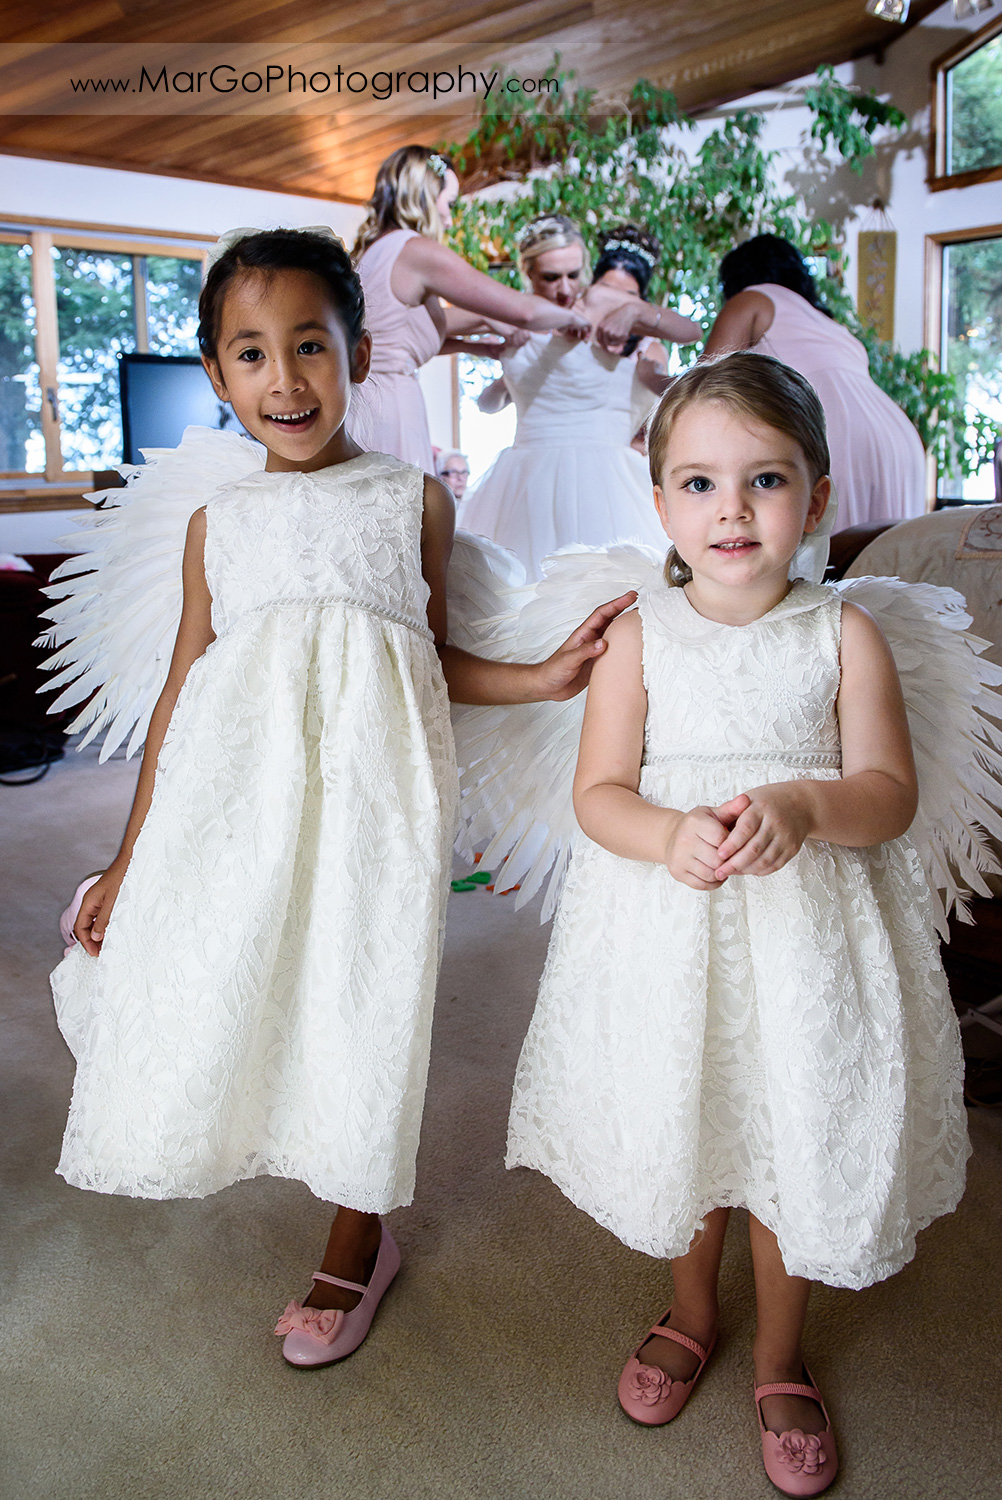 flower girls in white dresses with bride gettinf ready in the background